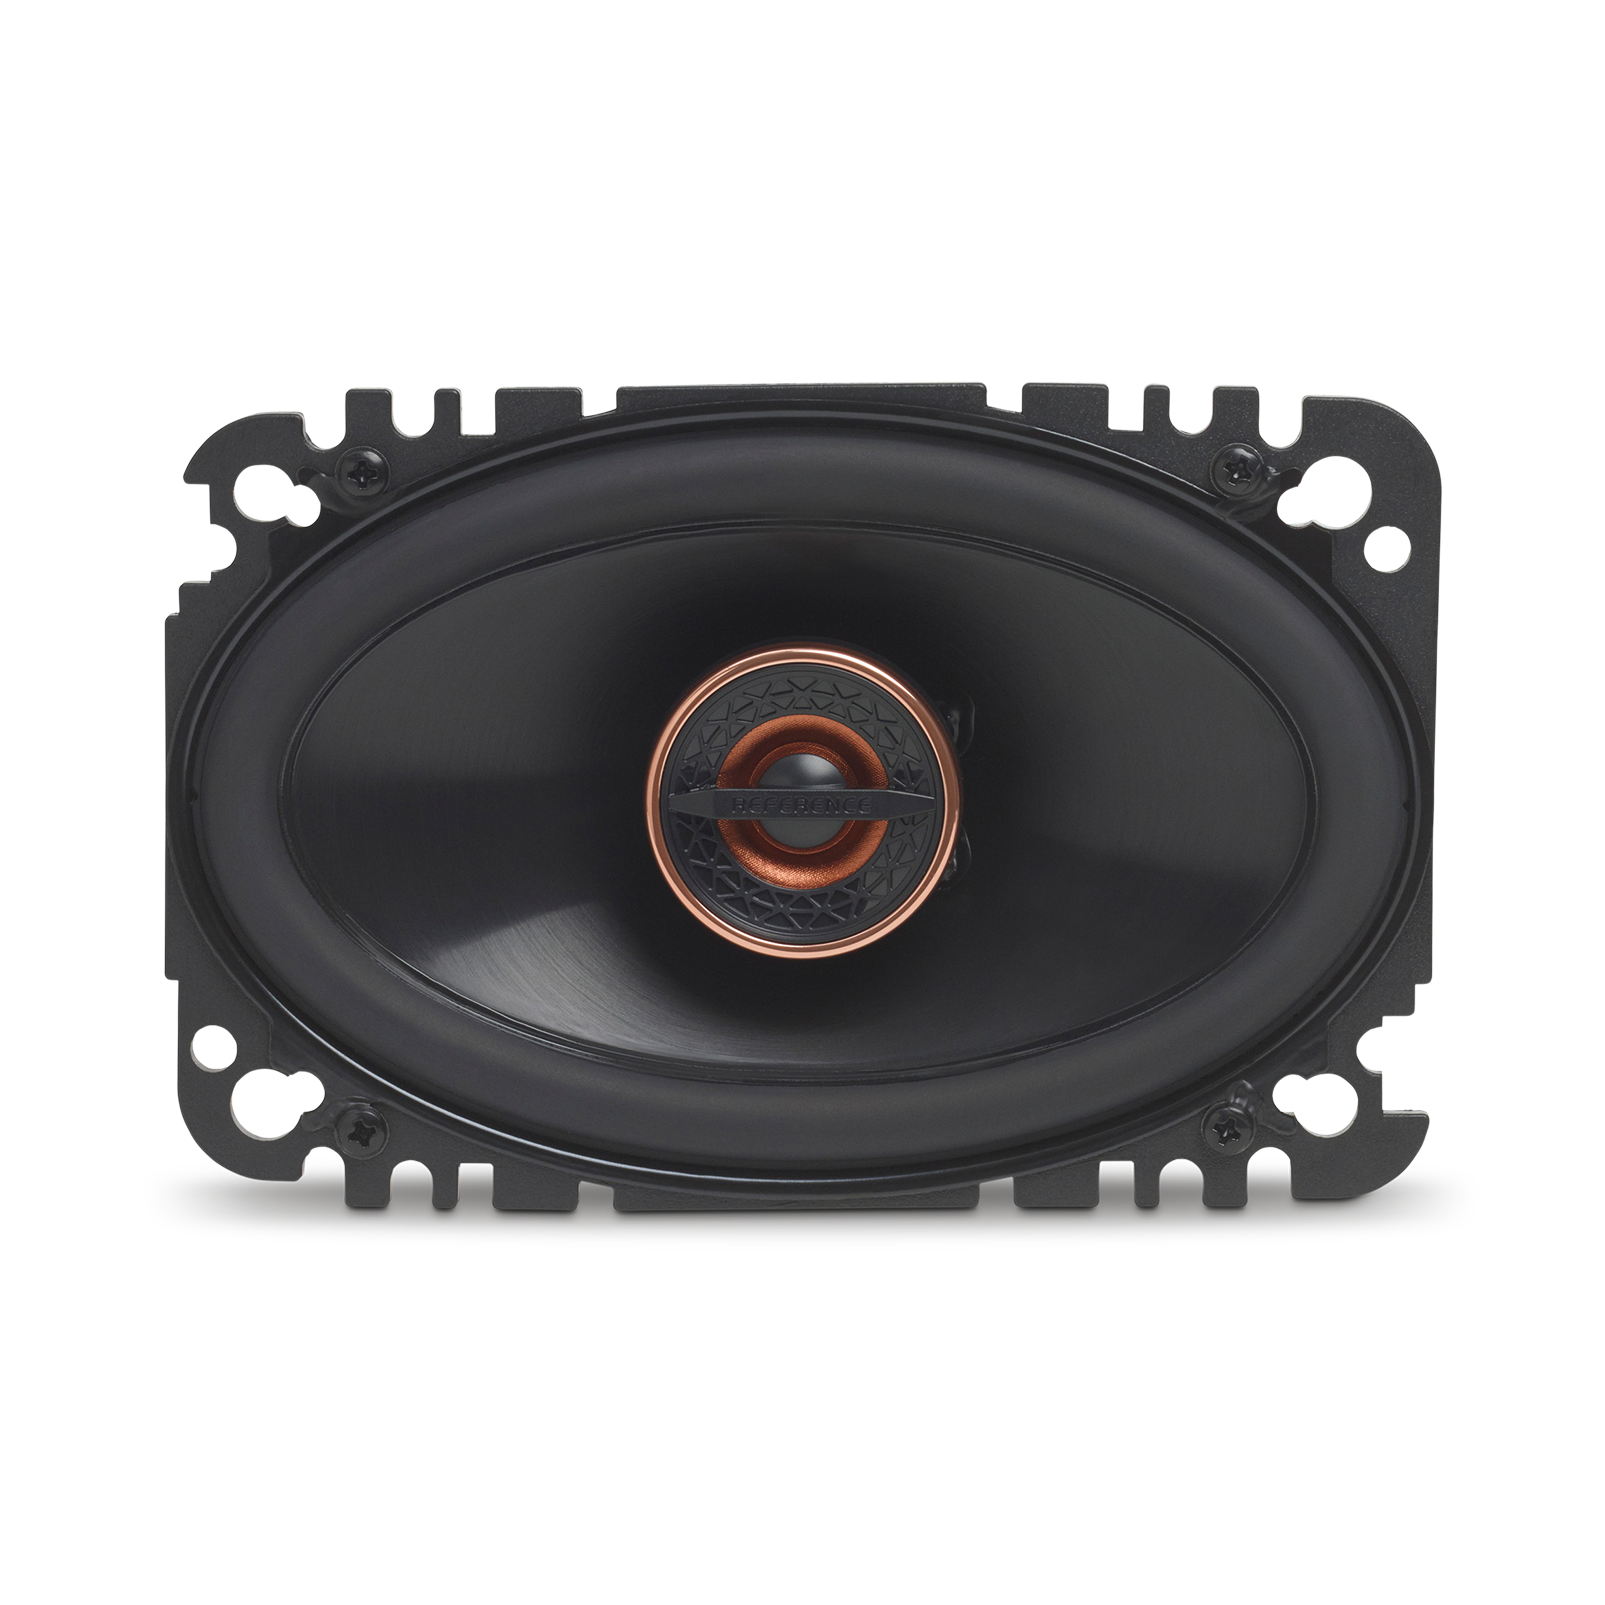 "Reference 6432cfx - Black - 4"" x 6"" (100mm x 152mm) coaxial car speaker, 135W - Front"